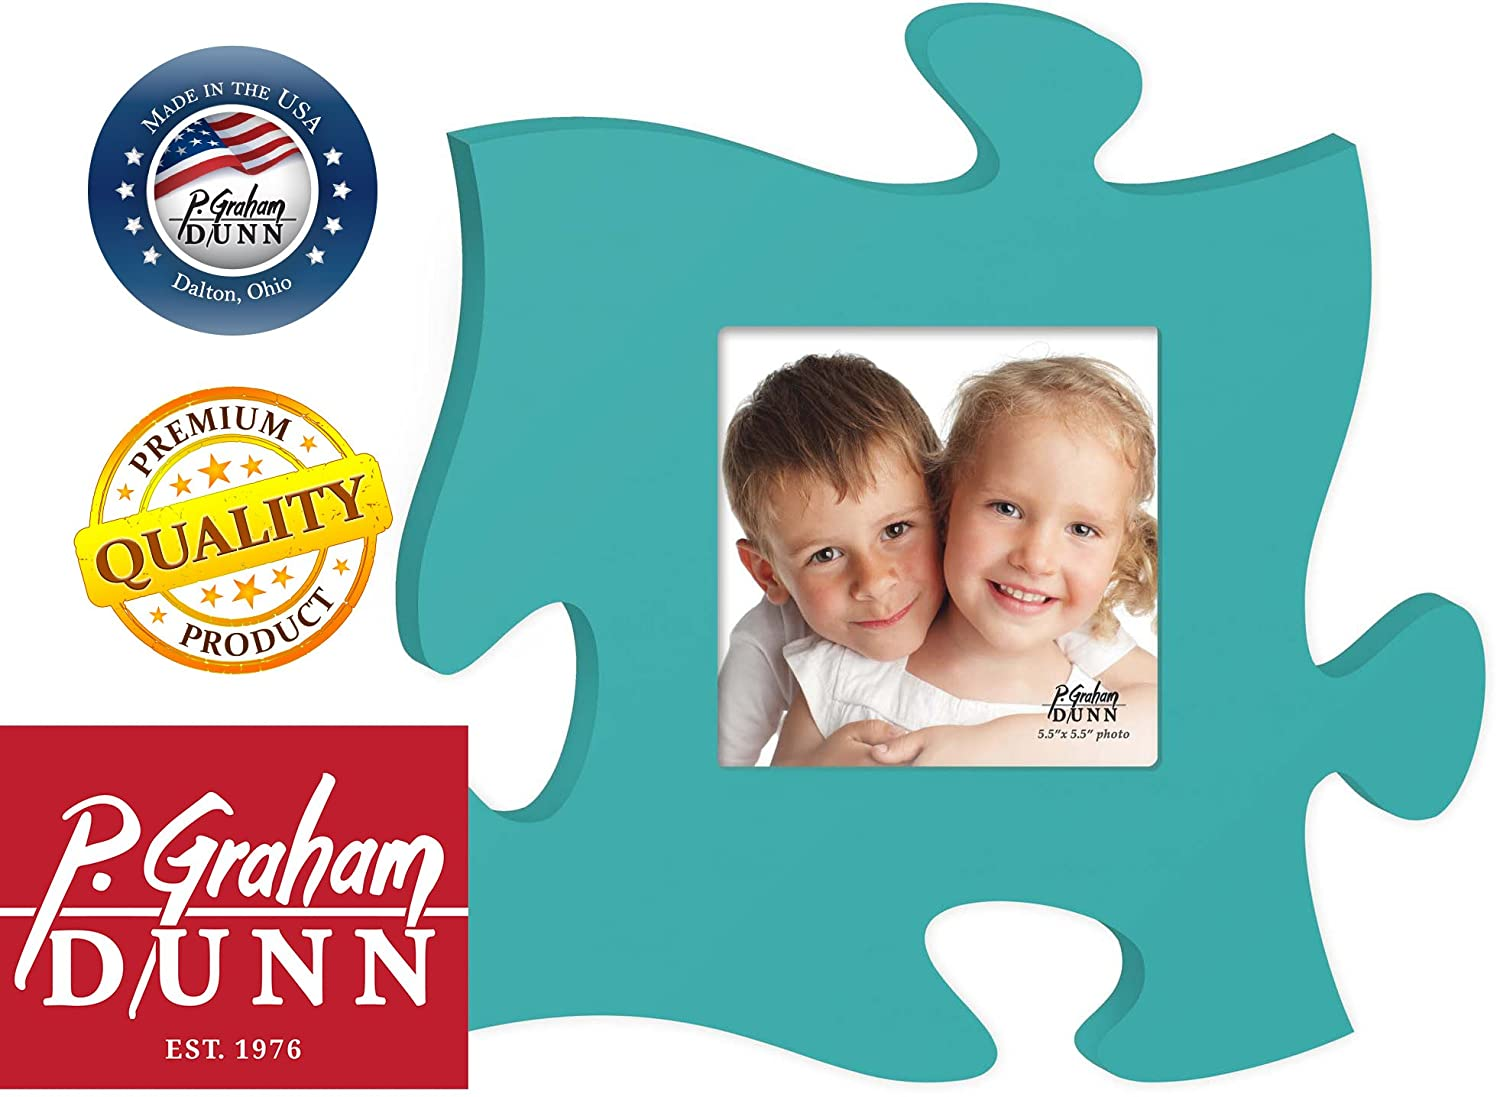 Amazon.com - Teal 12 x 12 Wall Hanging Wood Puzzle Piece Photo Frame -